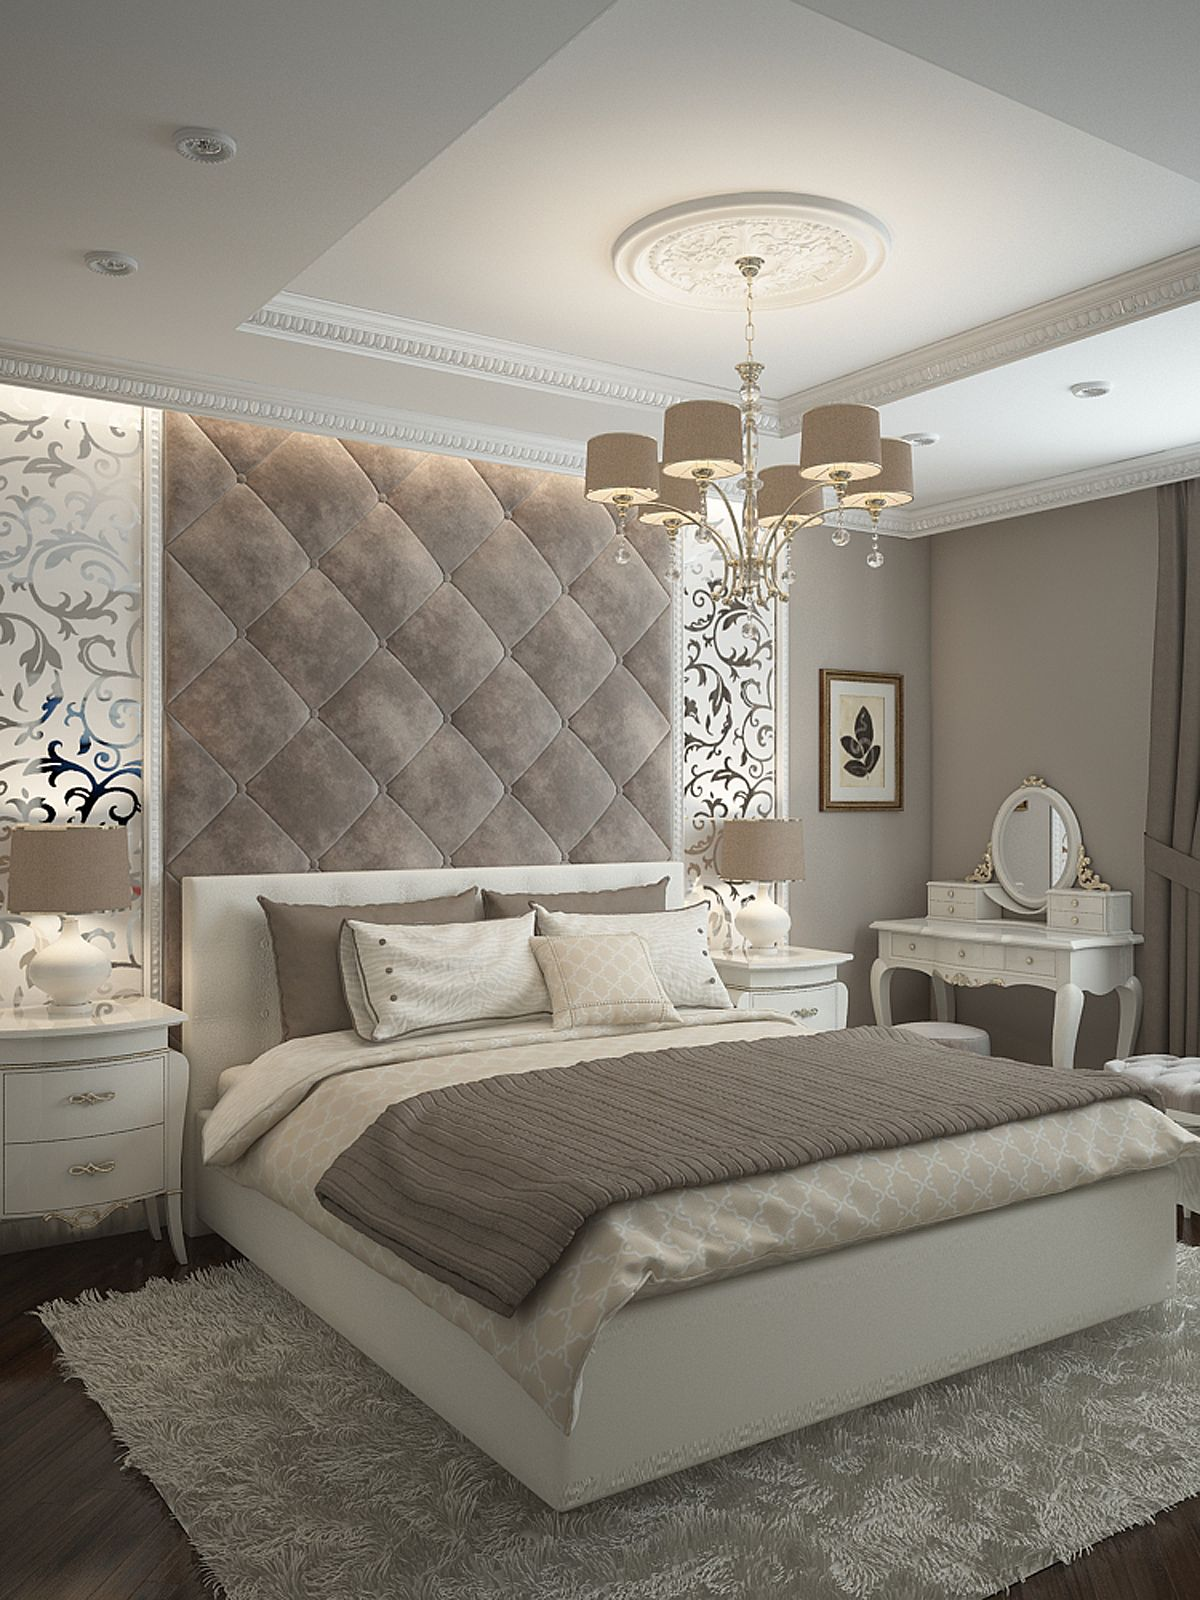 Modern Luxury Master Bedroom Designs Pin By Tania Marin On Decoration Ideas In 2019 Luxury Bedroom